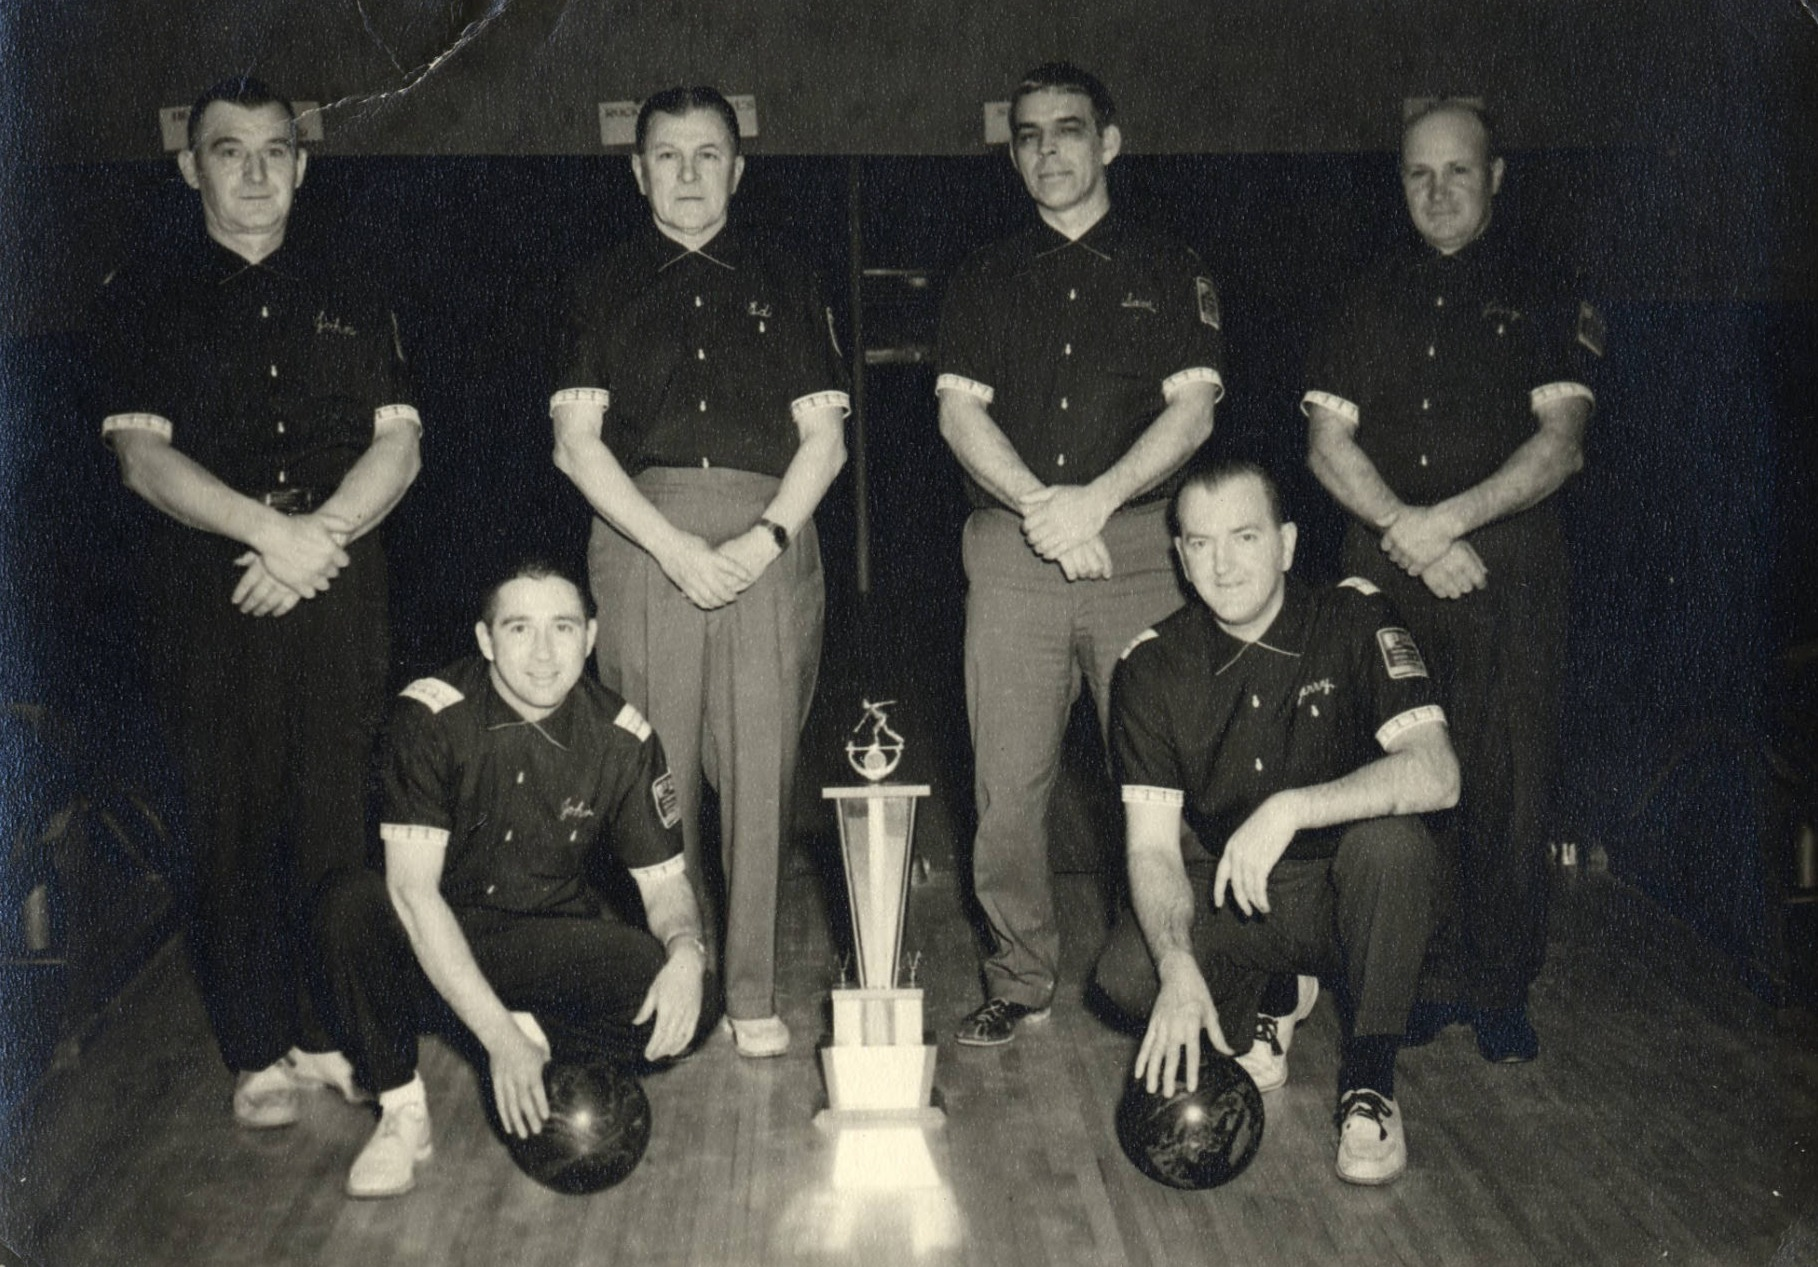 New Prague Men's Bowling Team, New Prague, Minnesota